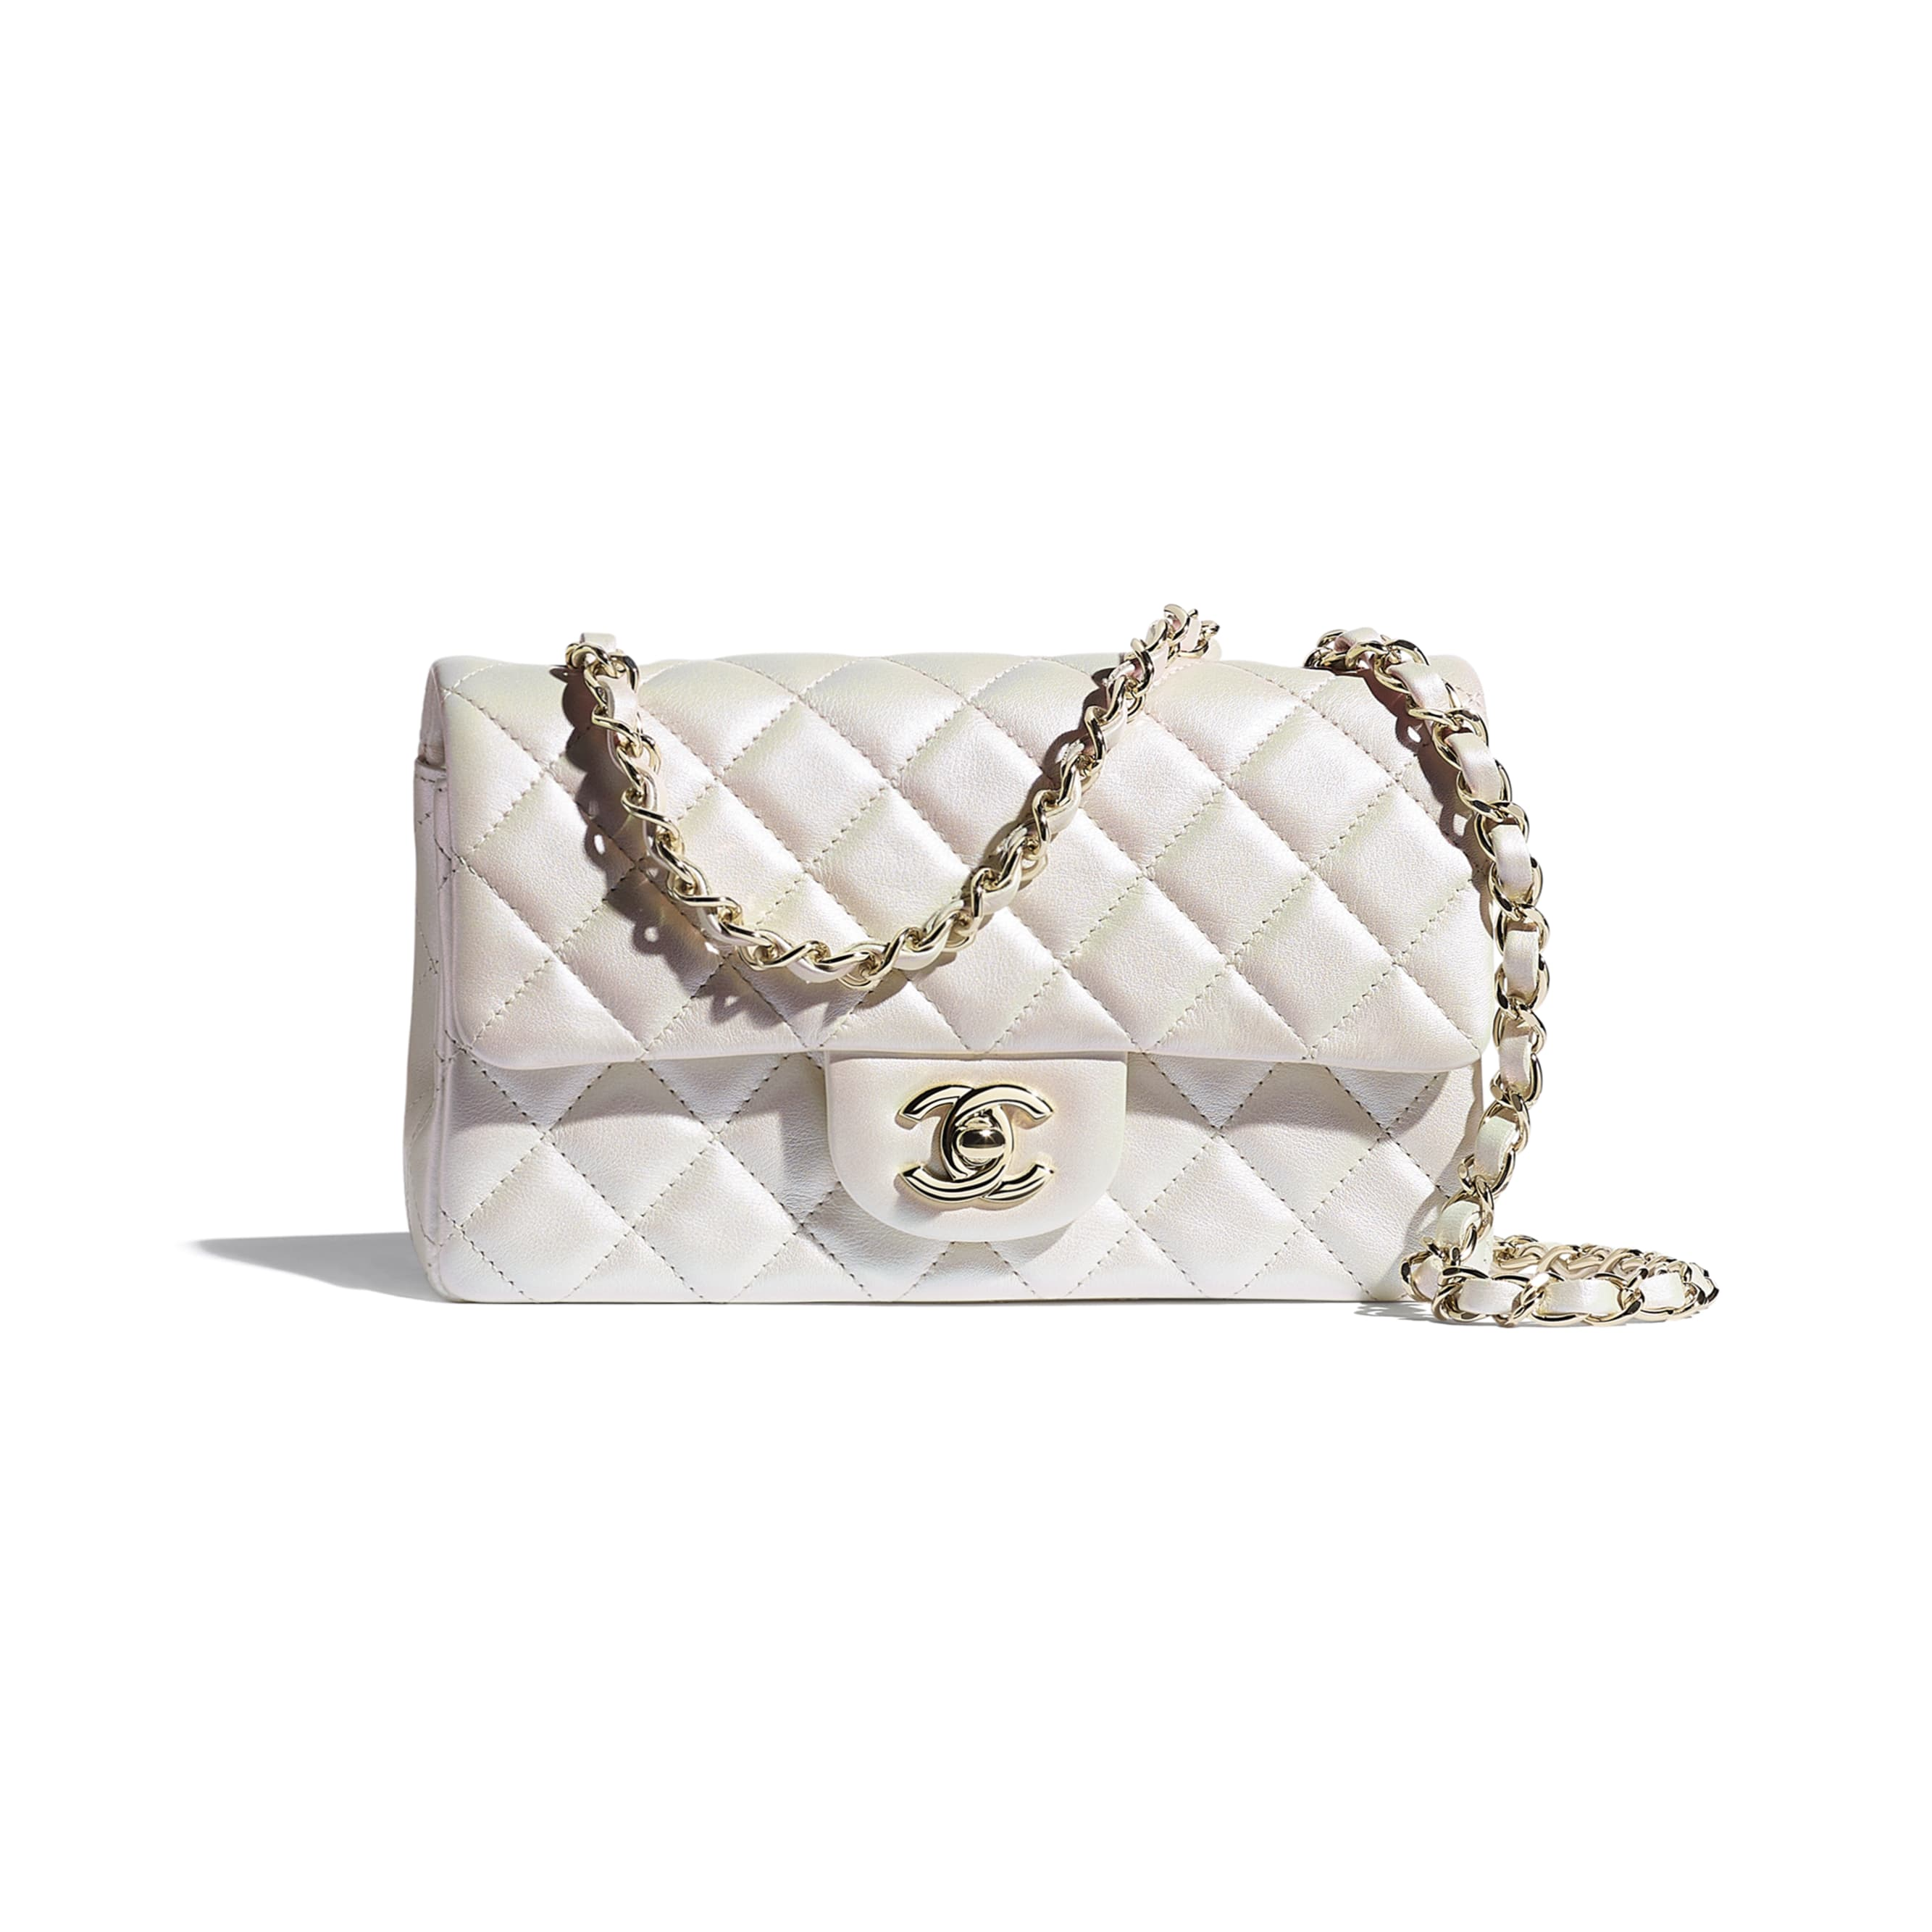 Mini Flap Bag - White - Iridescent Calfskin & Gold-Tone Metal - CHANEL - Default view - see standard sized version